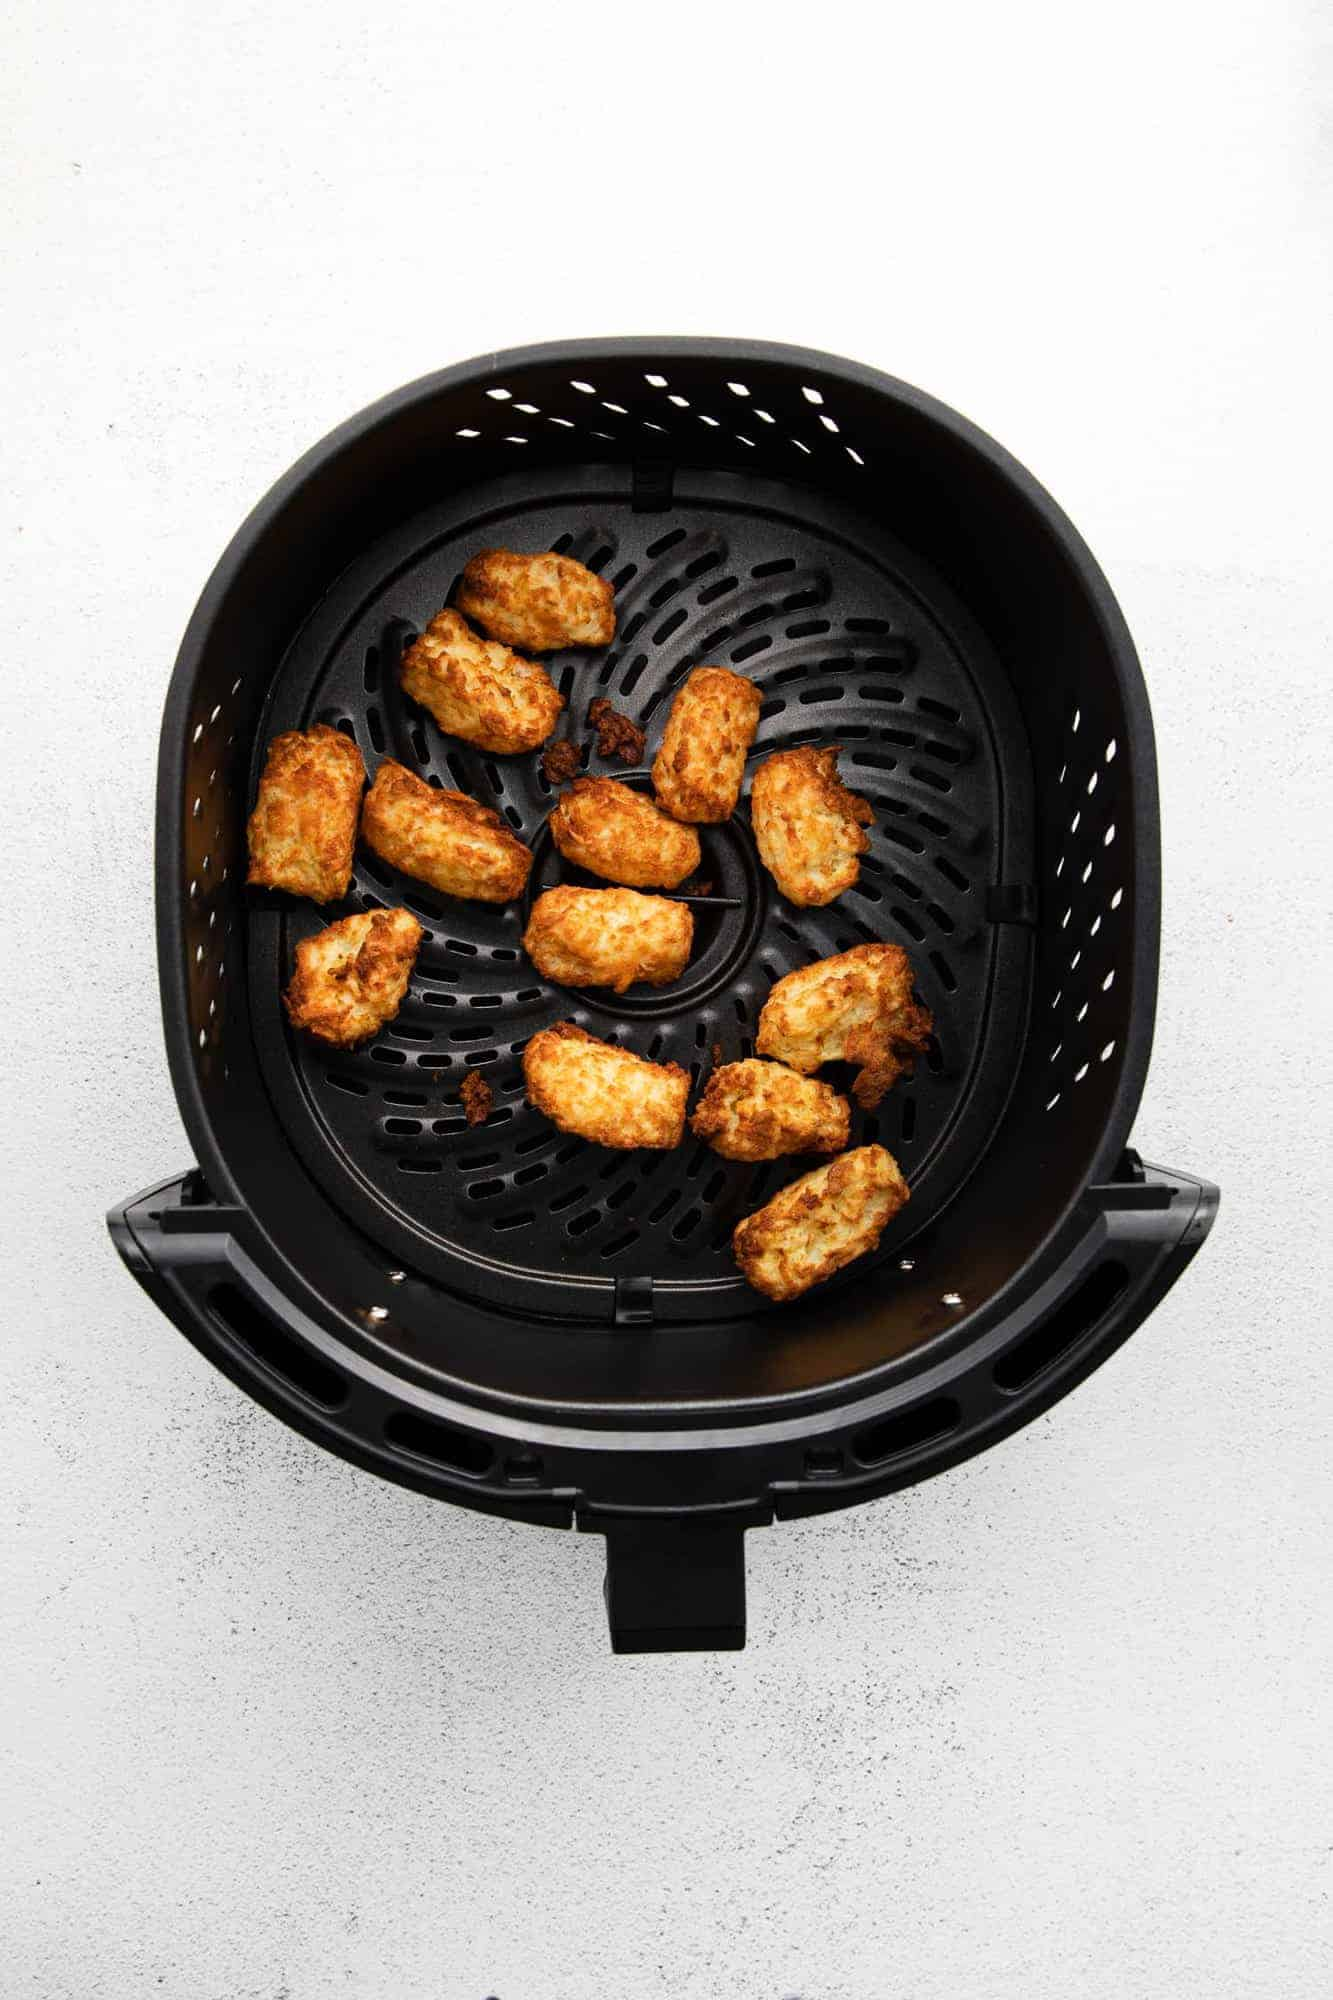 Cooked air fryer tater tots still in basket.